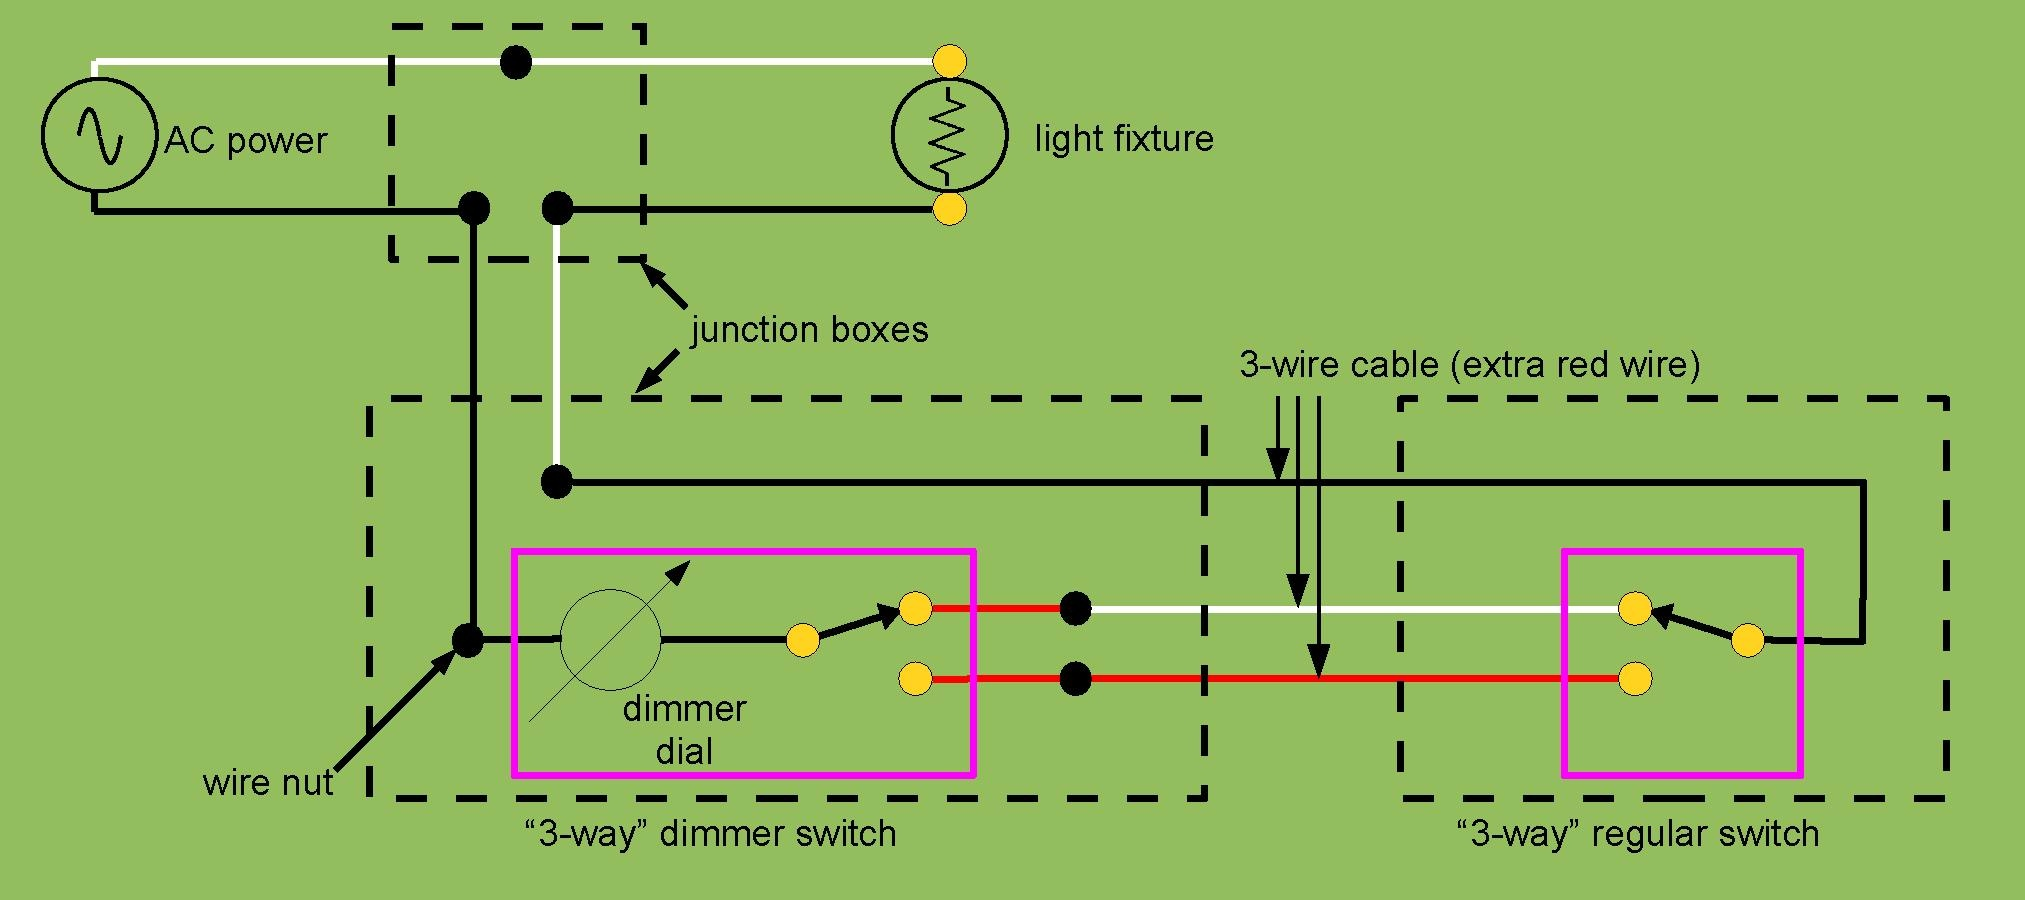 3 Way Switch Application Wiring Diagrams How To Wire A 4 File Dimmer Pdf Wikimedia Commons